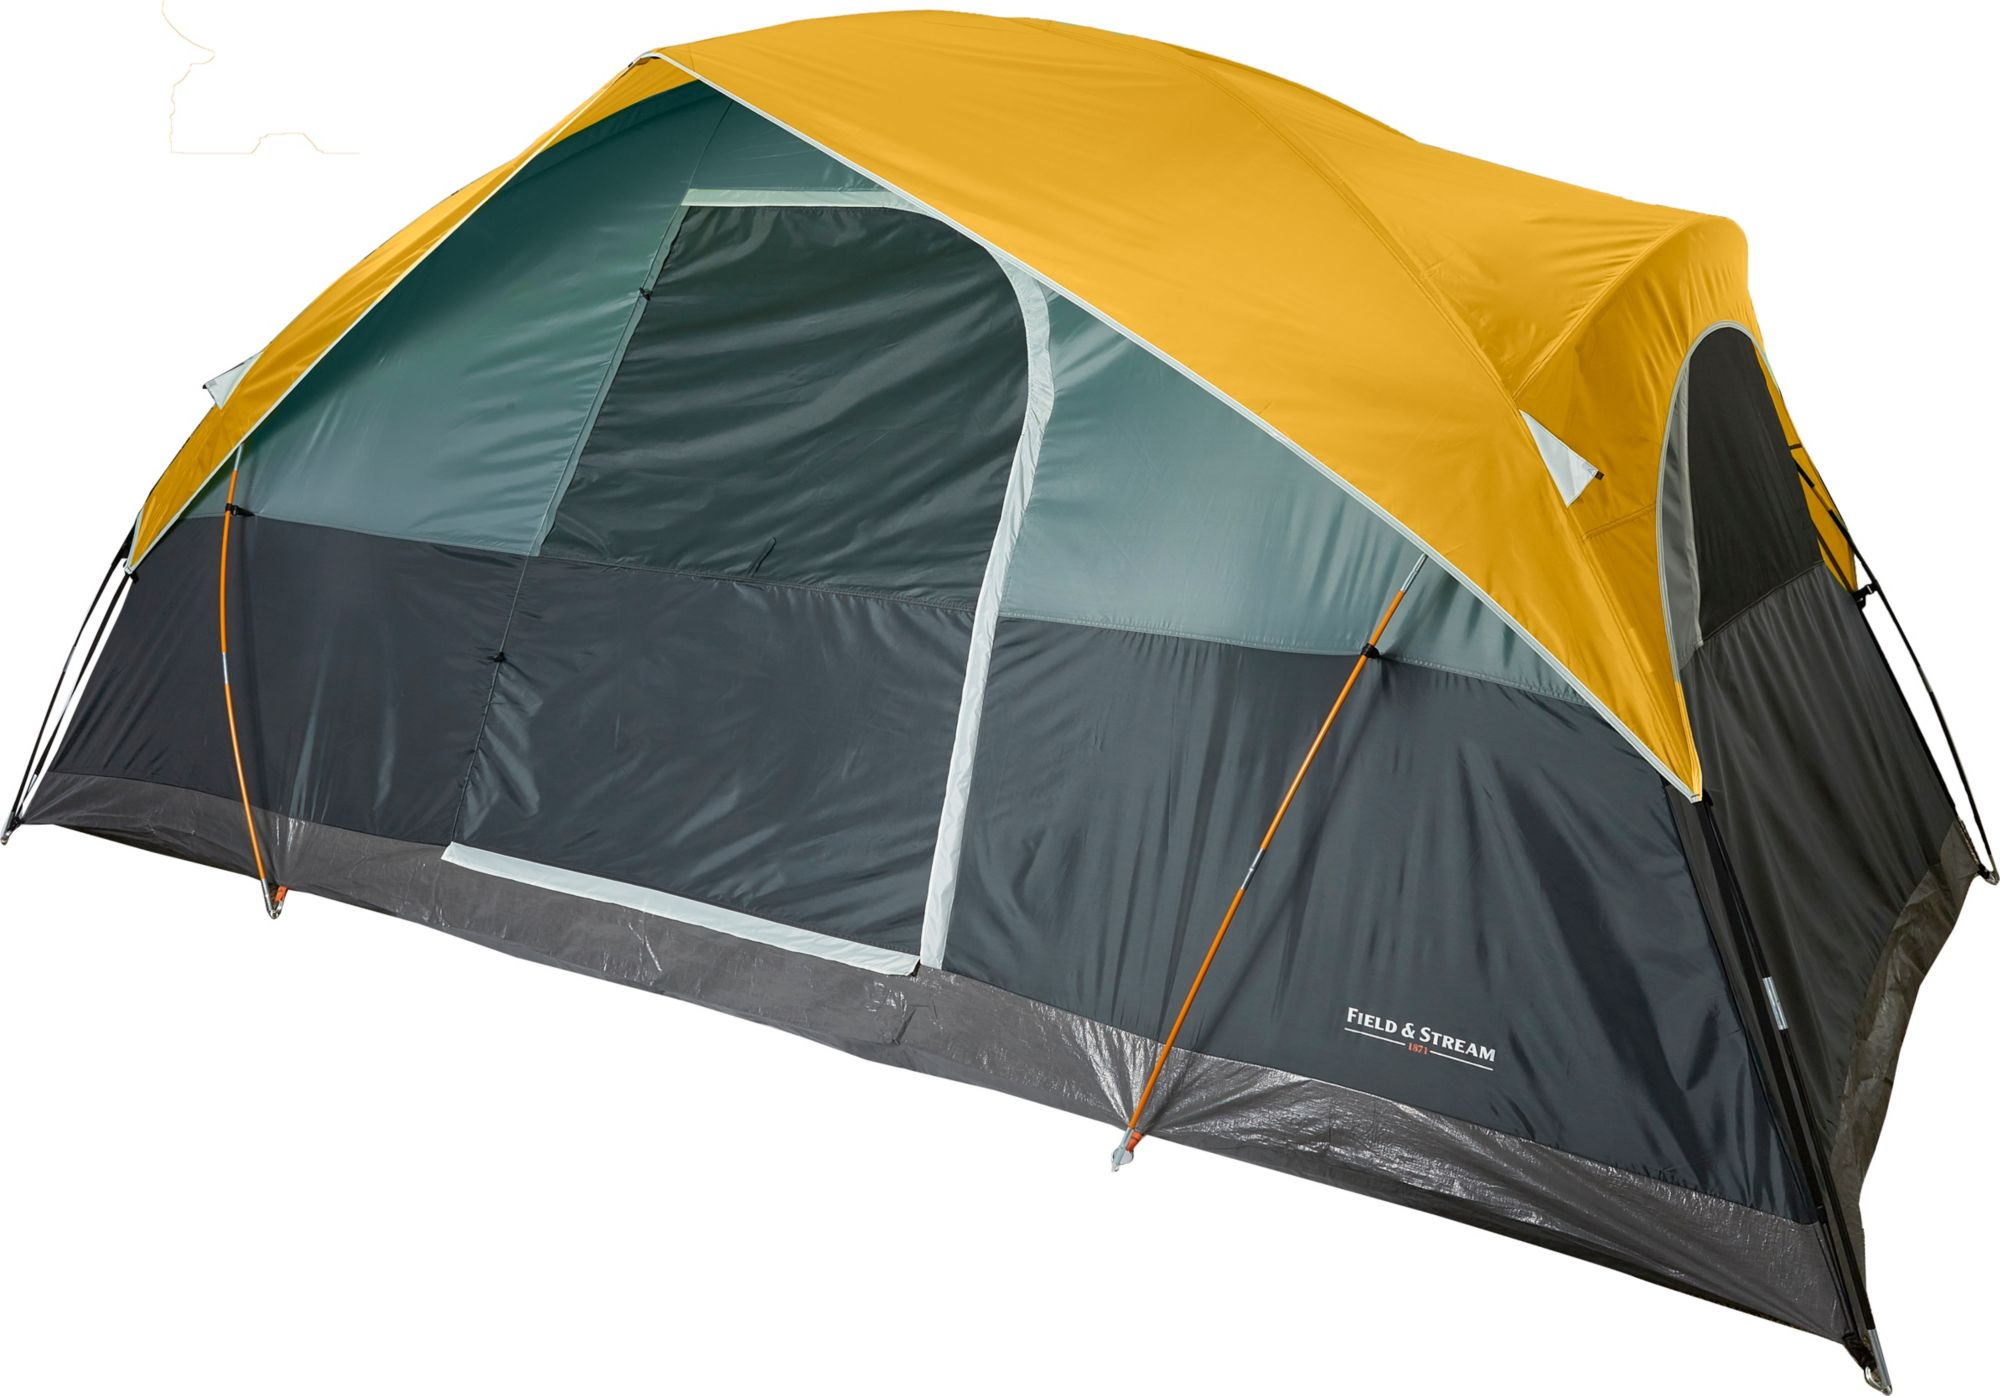 Field u0026 Stream Quad 8 Person Recreational Dome Tent  sc 1 st  Field u0026 Stream : coleman instant up tent 3 person - memphite.com